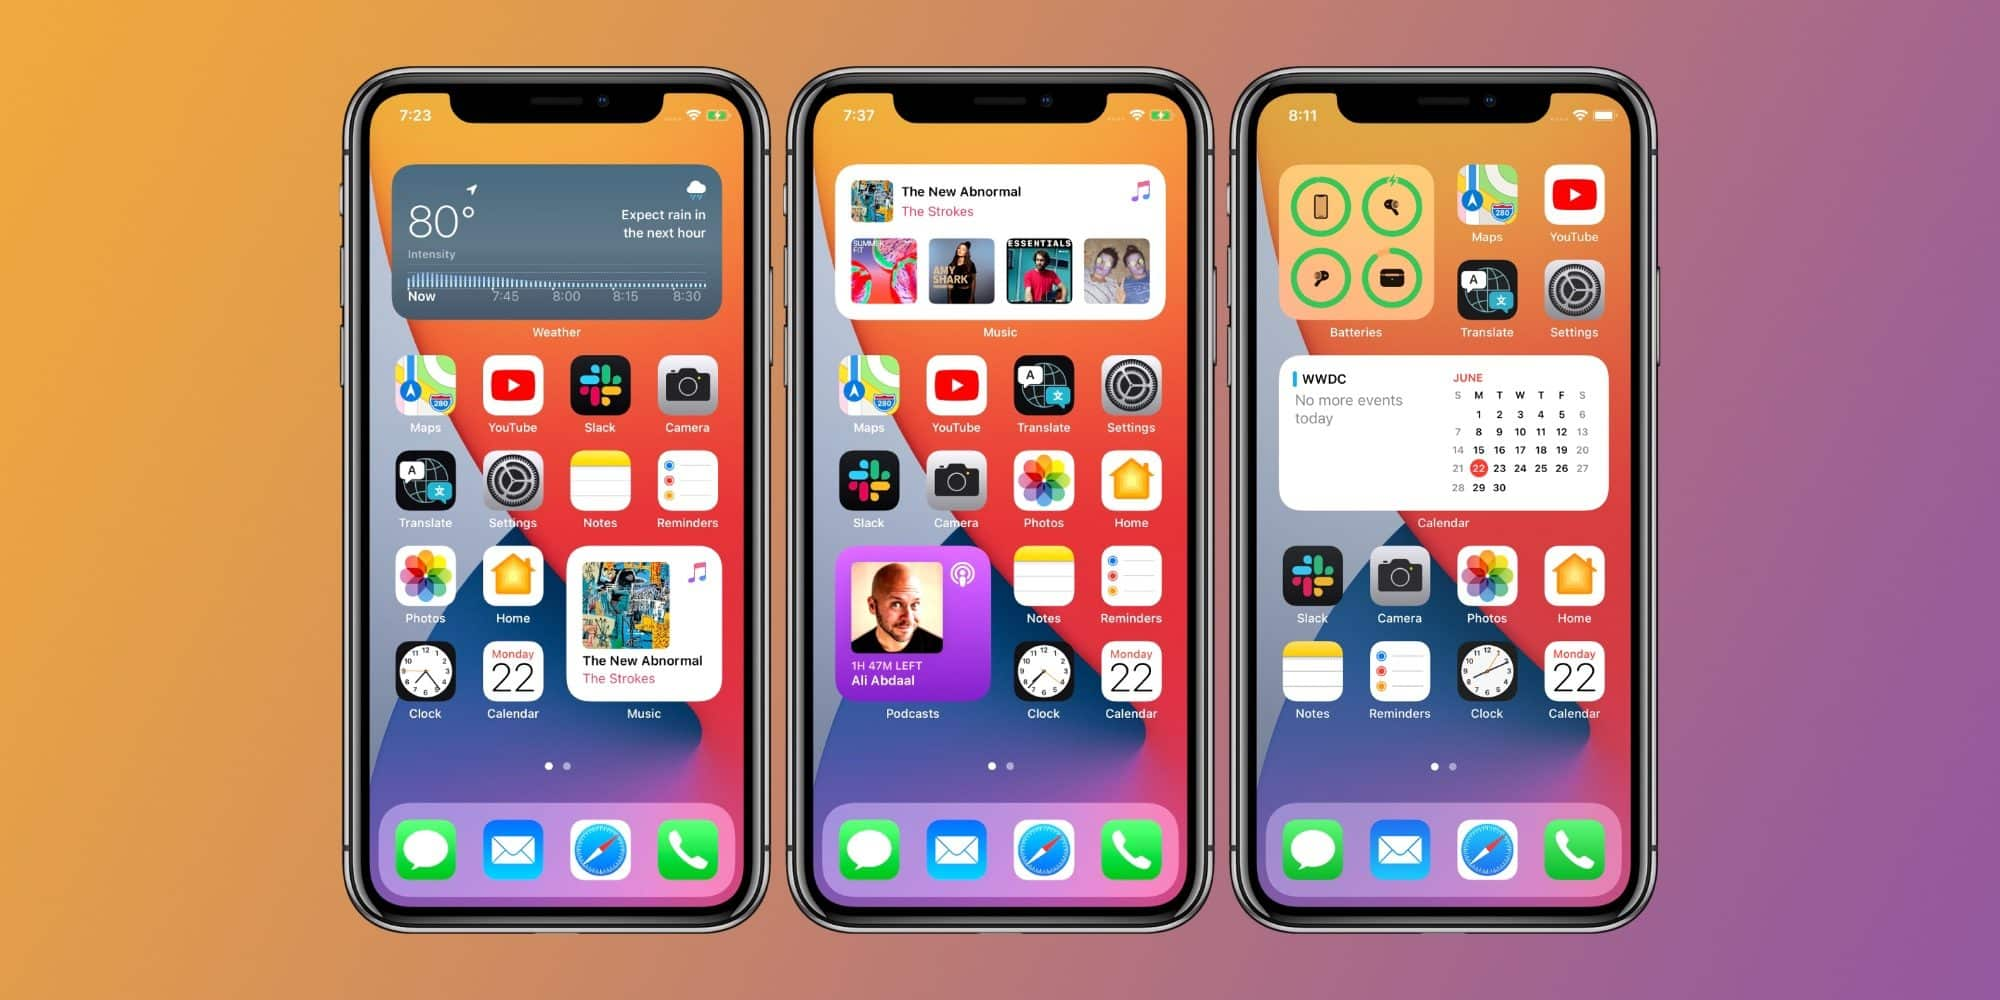 iOS 14 brings widgets support to the iPhone